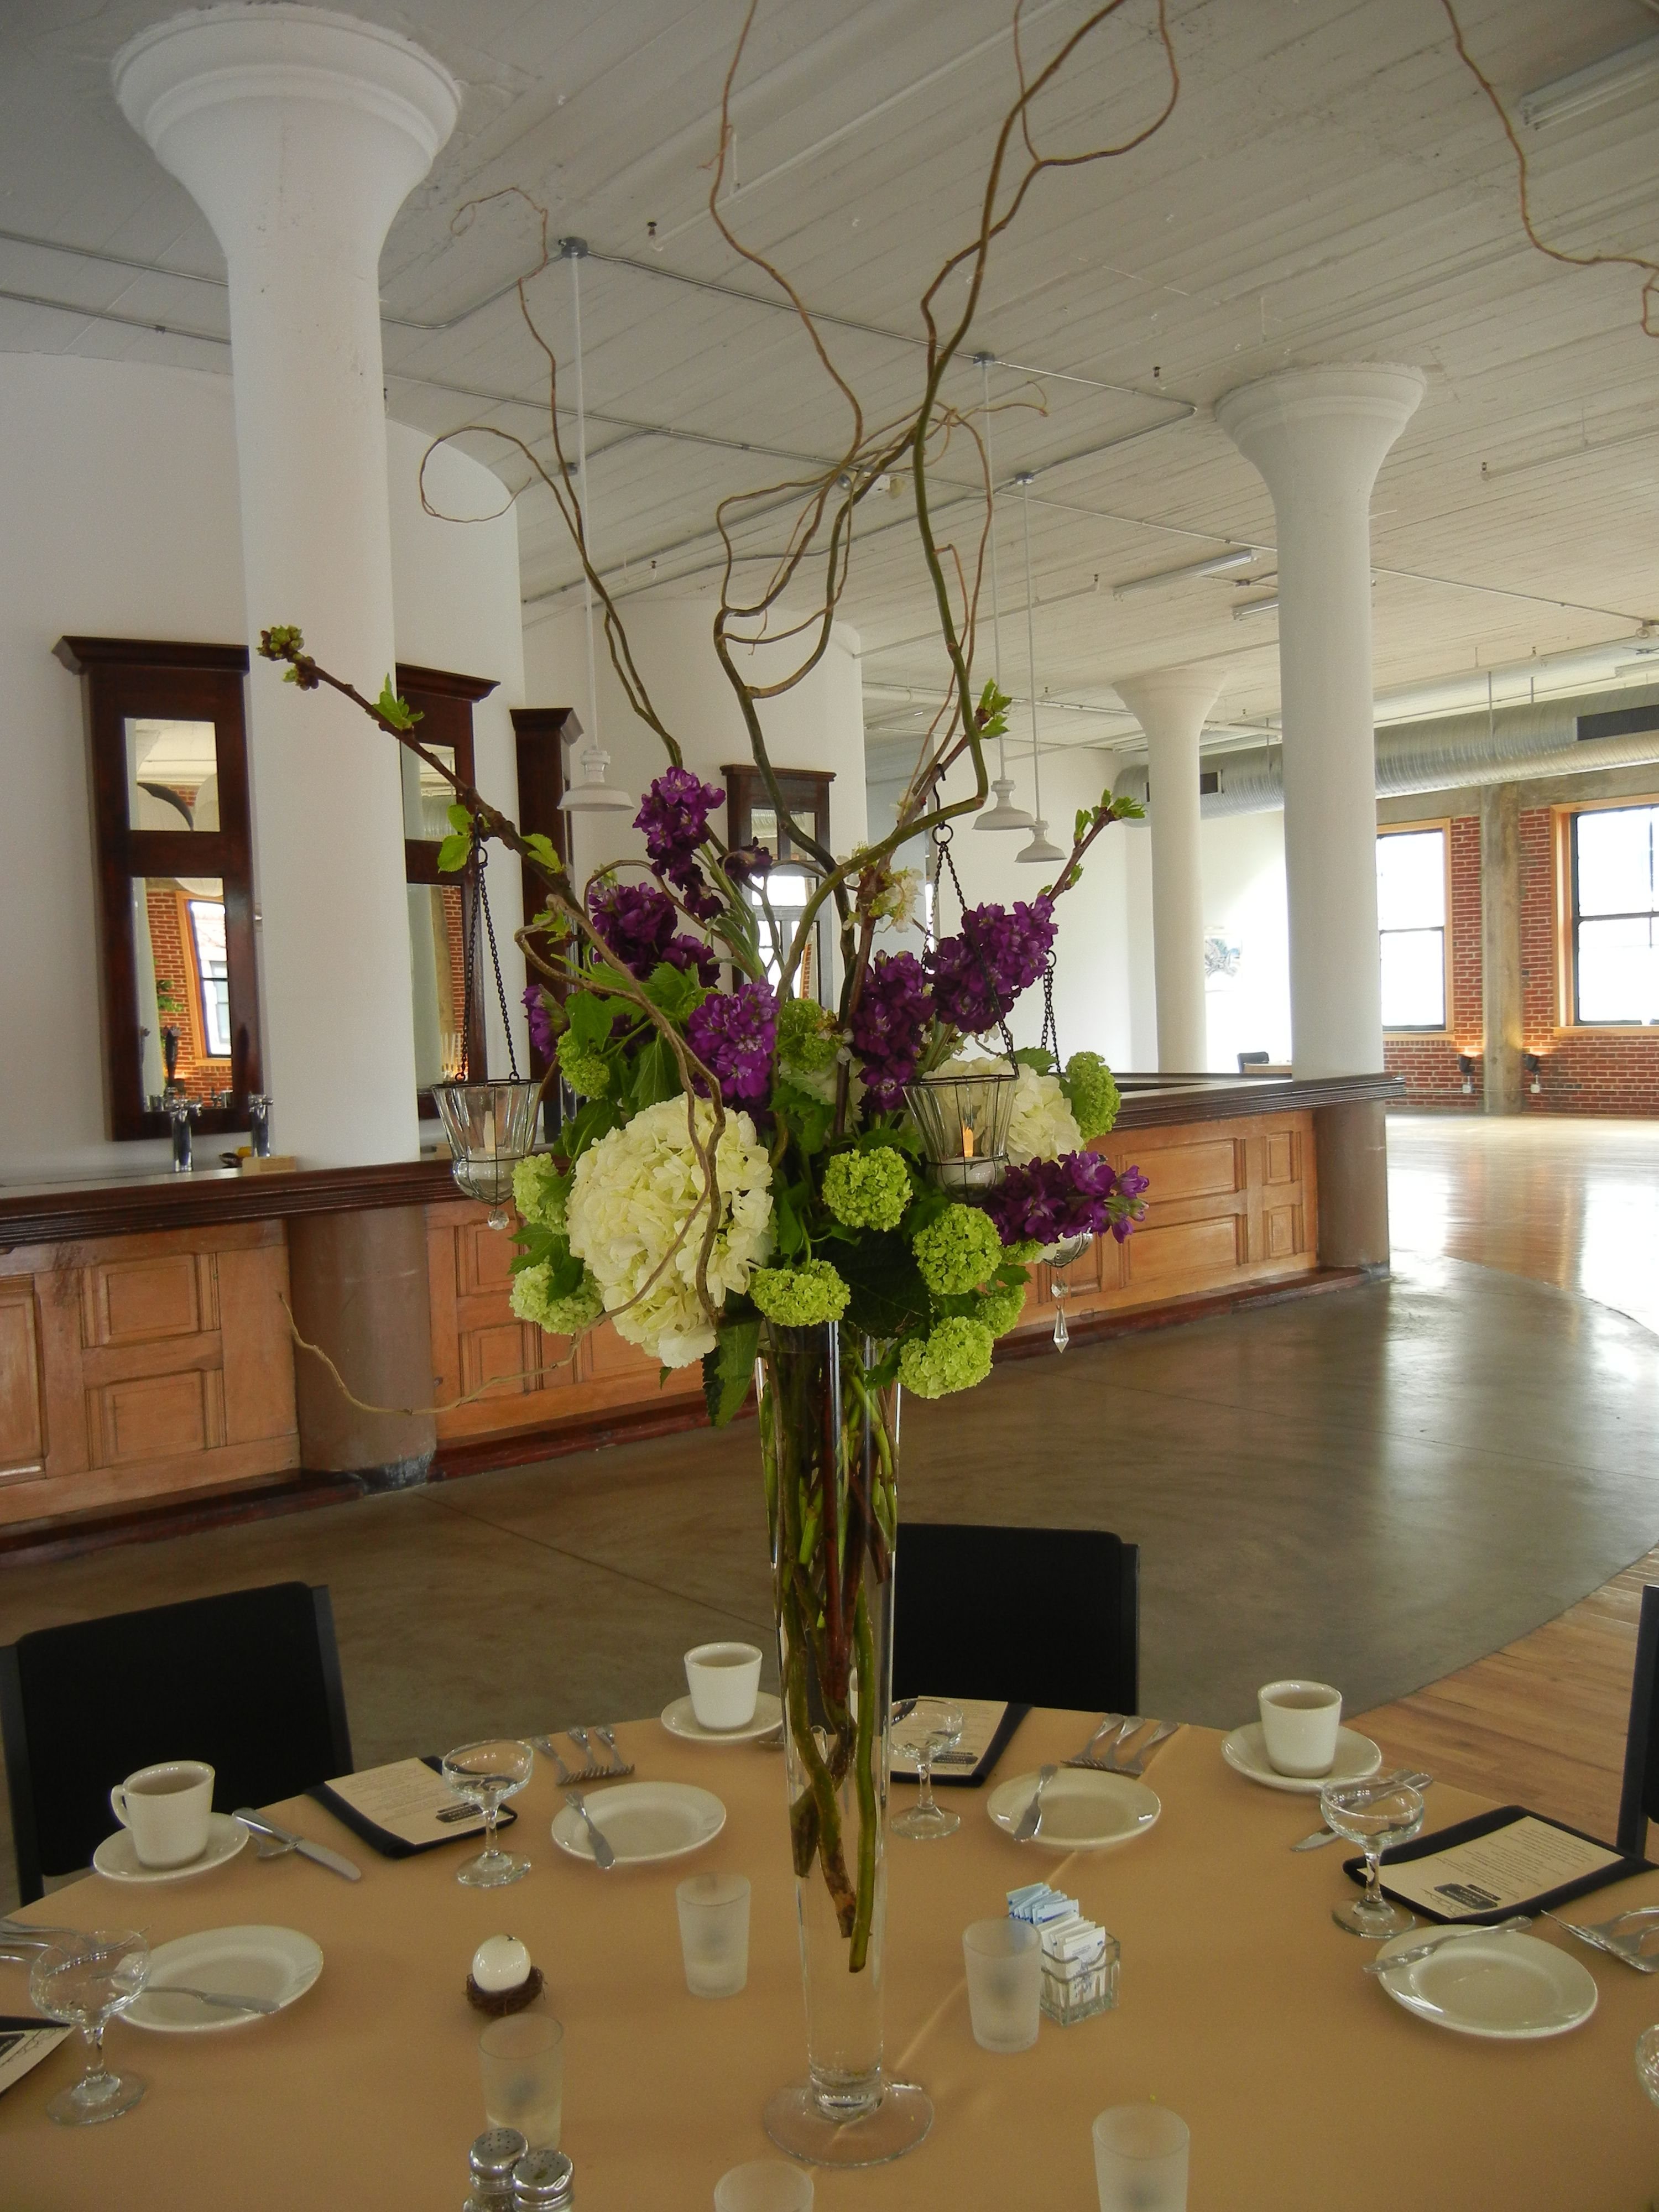 Tall centerpiece of white hydrangeas purple stock and